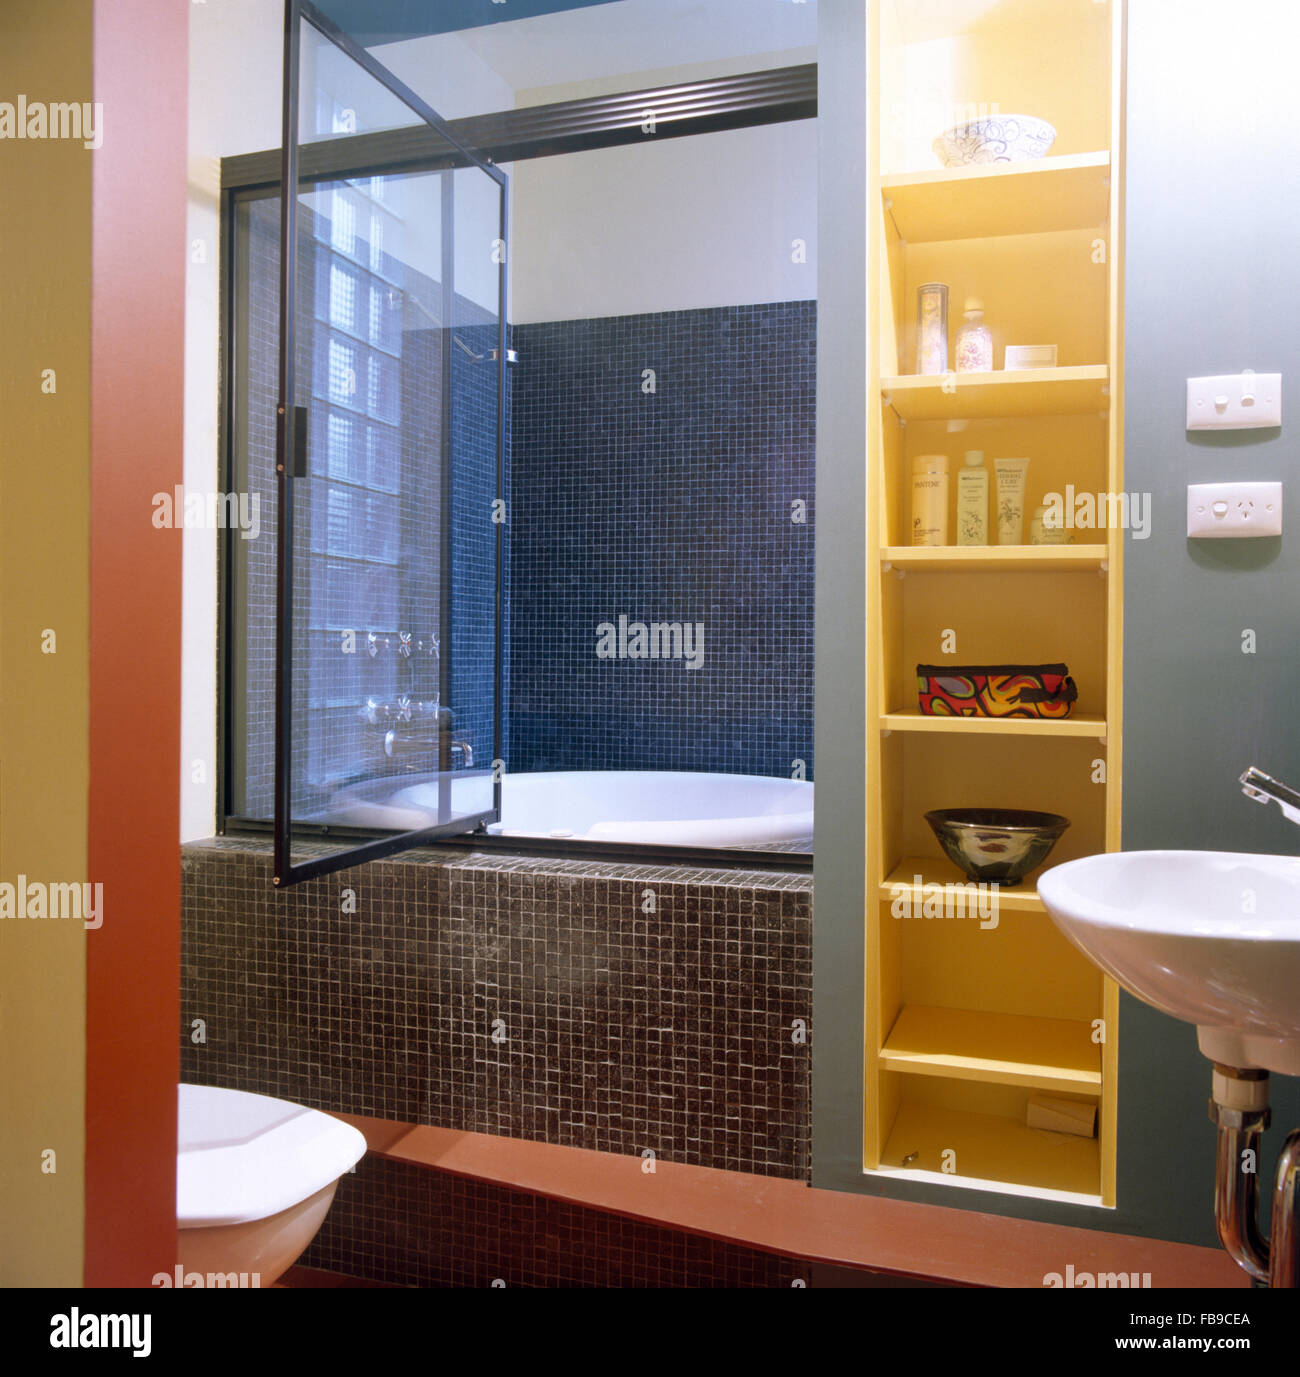 Glass Shower Door Stock Photos & Glass Shower Door Stock Images - Alamy